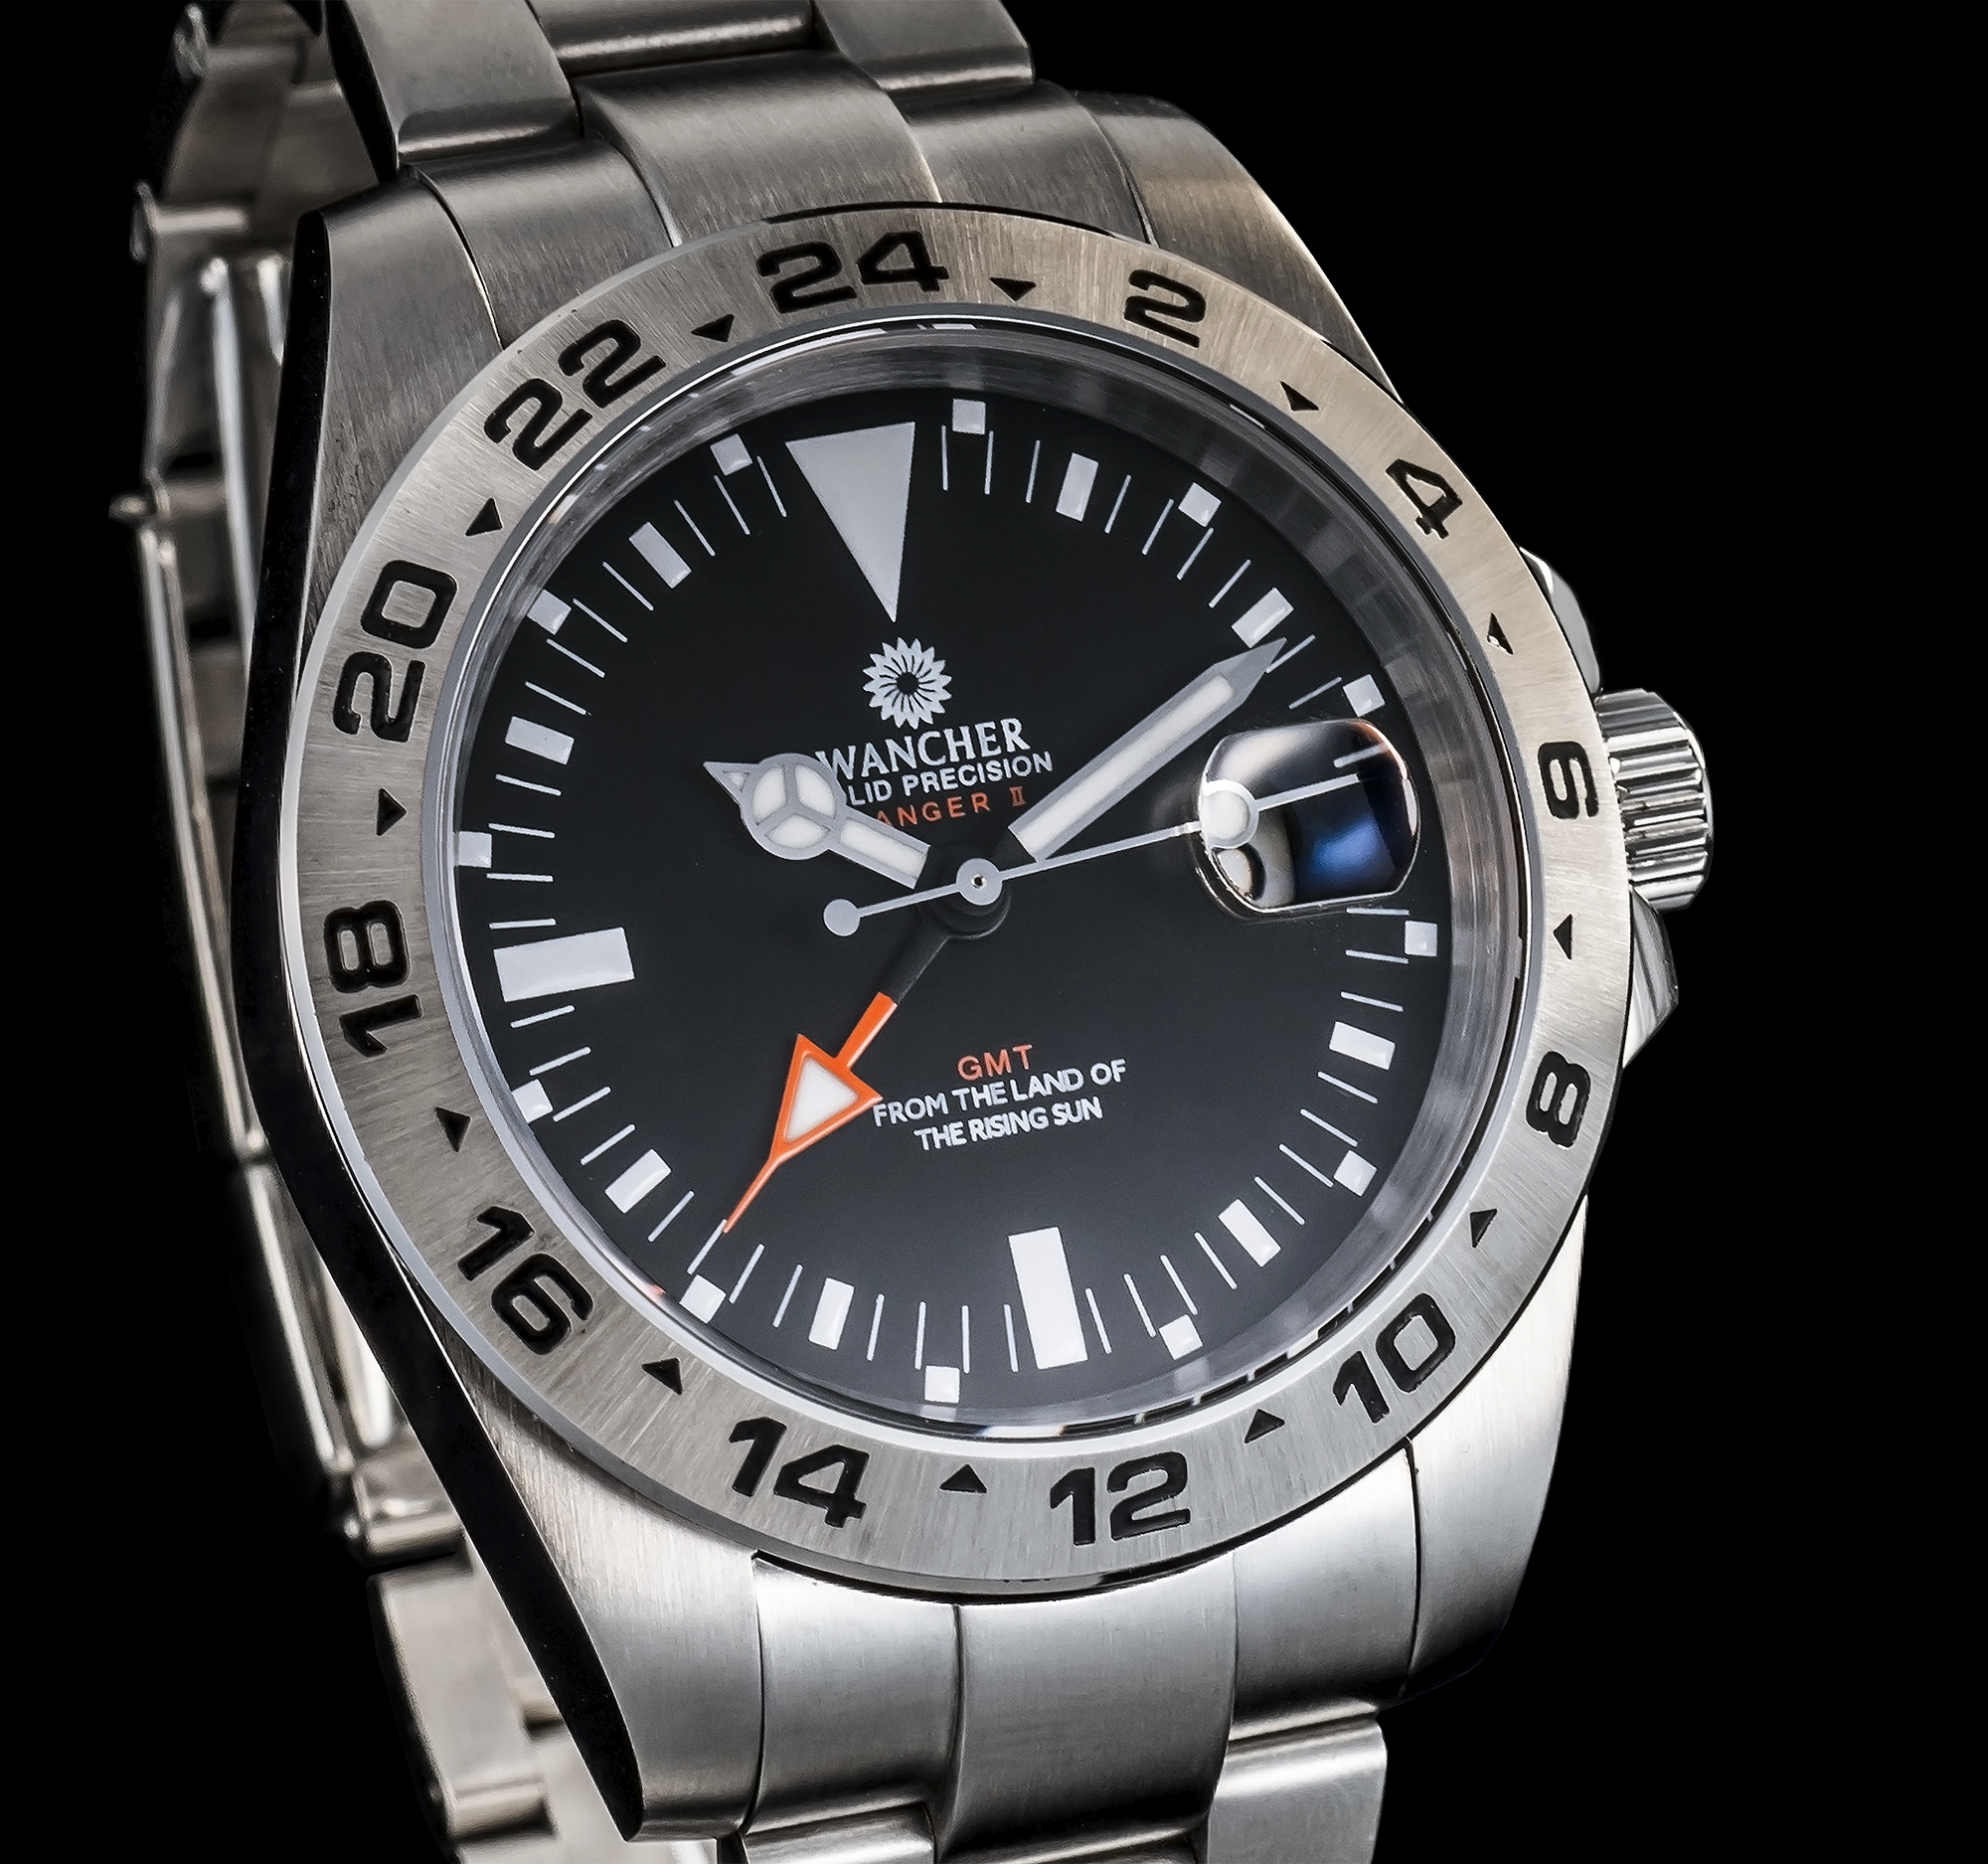 GMT - A watch with GMT function is a timepiece with two hands to display the time in a 12-hour format and an independently adjustable 24-hour hand. With this function, two time zones can be showed clearly at once. White GMT watches were originally designed for pilots, these days they are broadly used by people who may be interested in tracking time in two different locations or for travellers who would like to know what time it is back home.